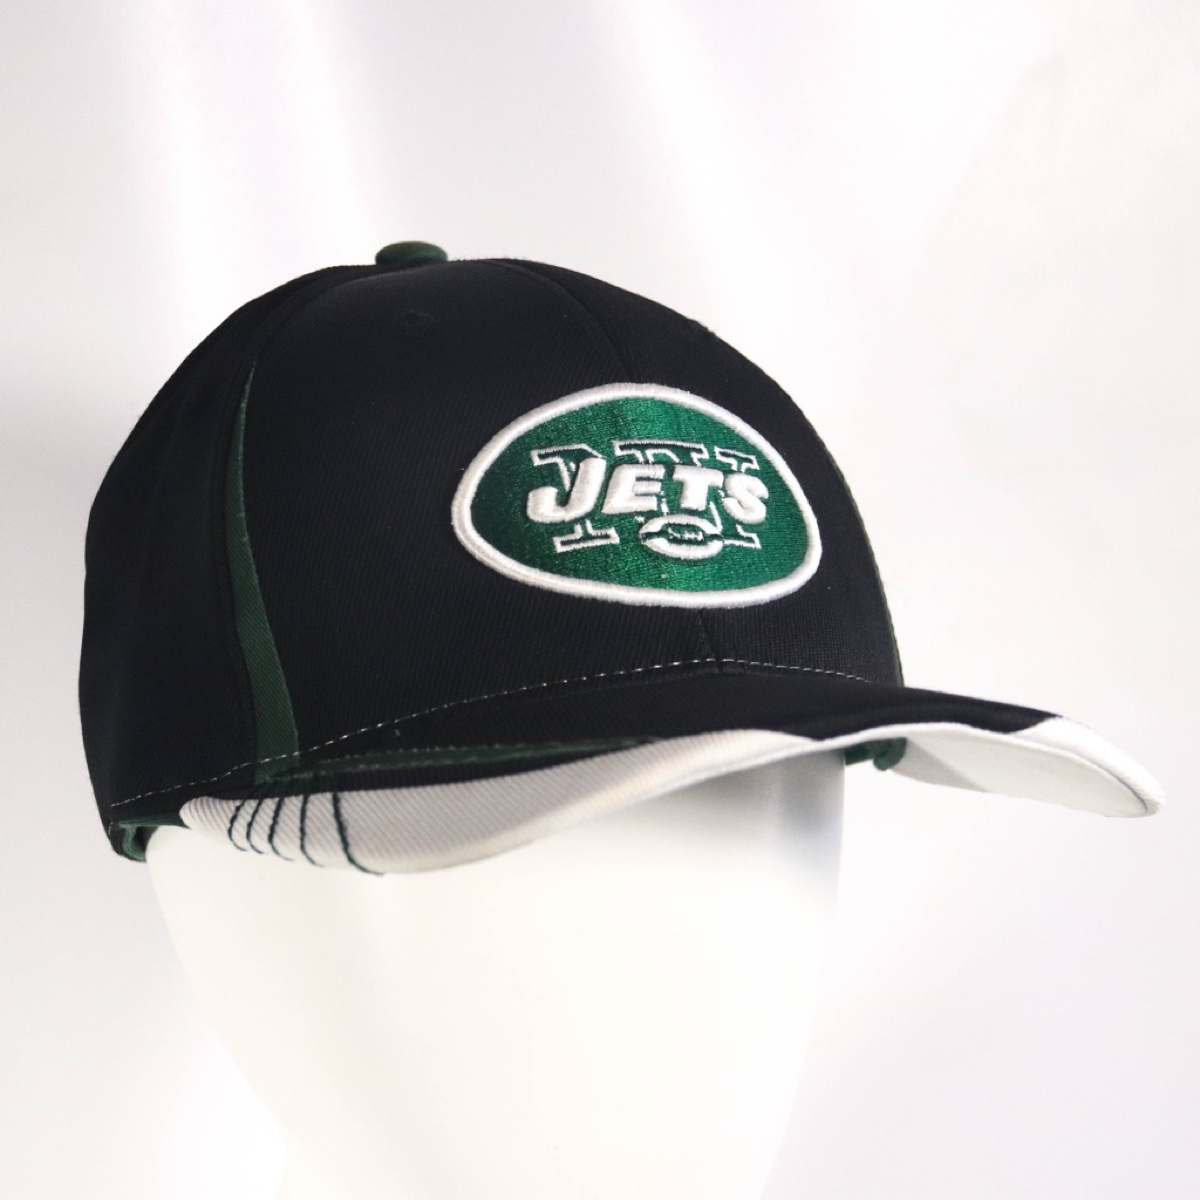 Black Green Embroidered New York Jets Reebok Fitted NFL Football New Era 9FIFTY Hat Cap Size S / M